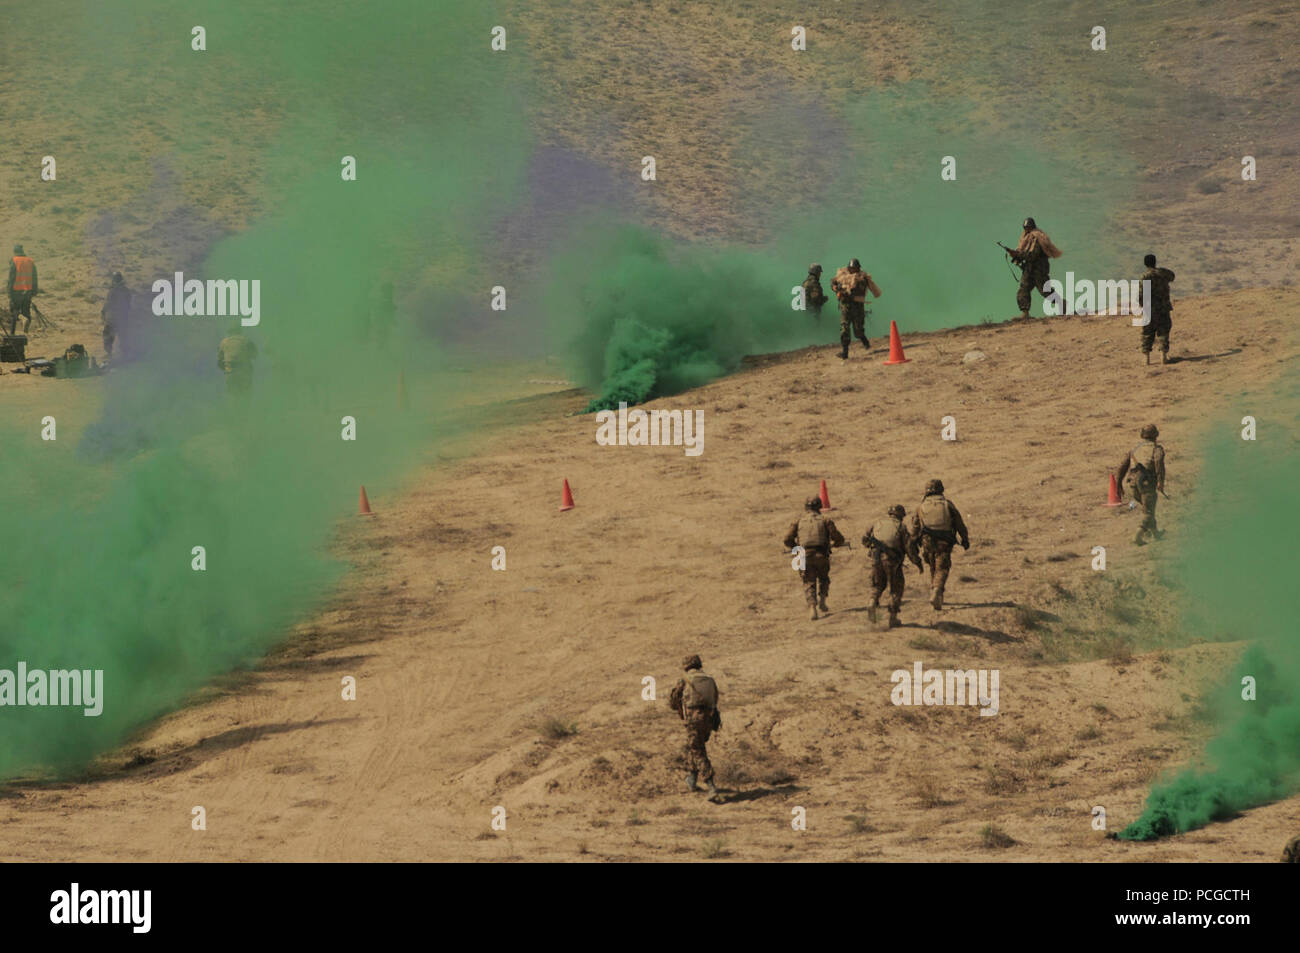 Afghanistan (September 2, 2010) – With colored smoke simulating the fog of war, Afghan National Army soldiers advance during a simulated strike on enemy positions at the Infantry Branch School in Darulaman. The school teaches Afghan soldiers infantry tactics and trains them on weaponry including mortars, crew-served weapons and recoilless guns. - Stock Image